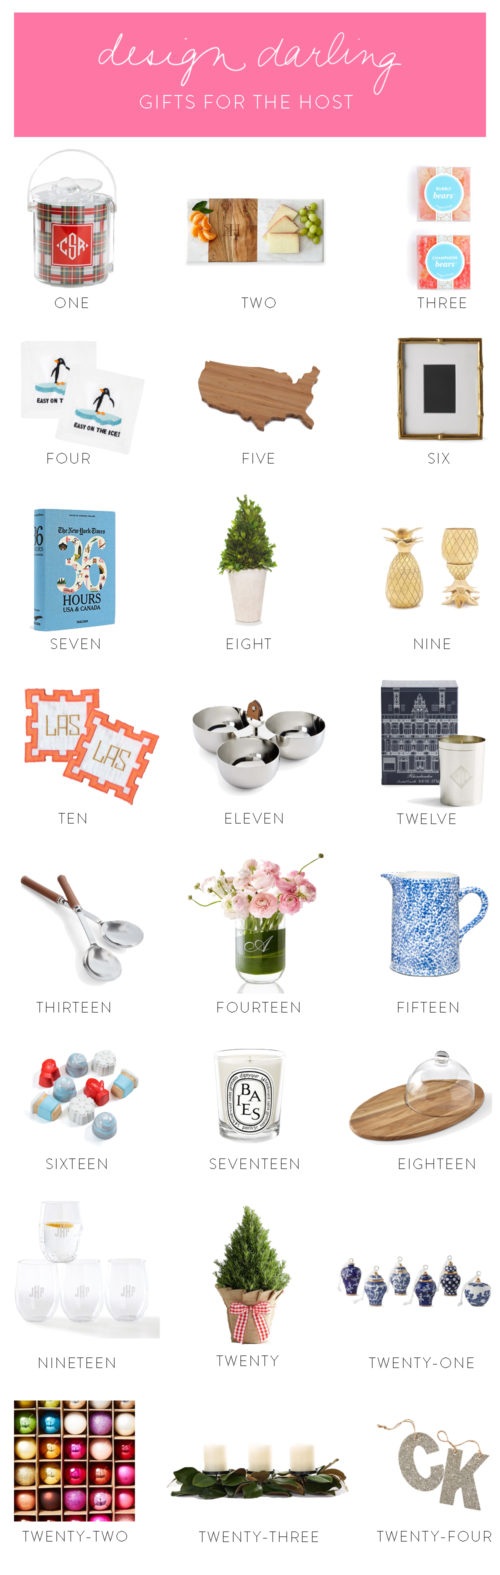 design darling hostess gifts